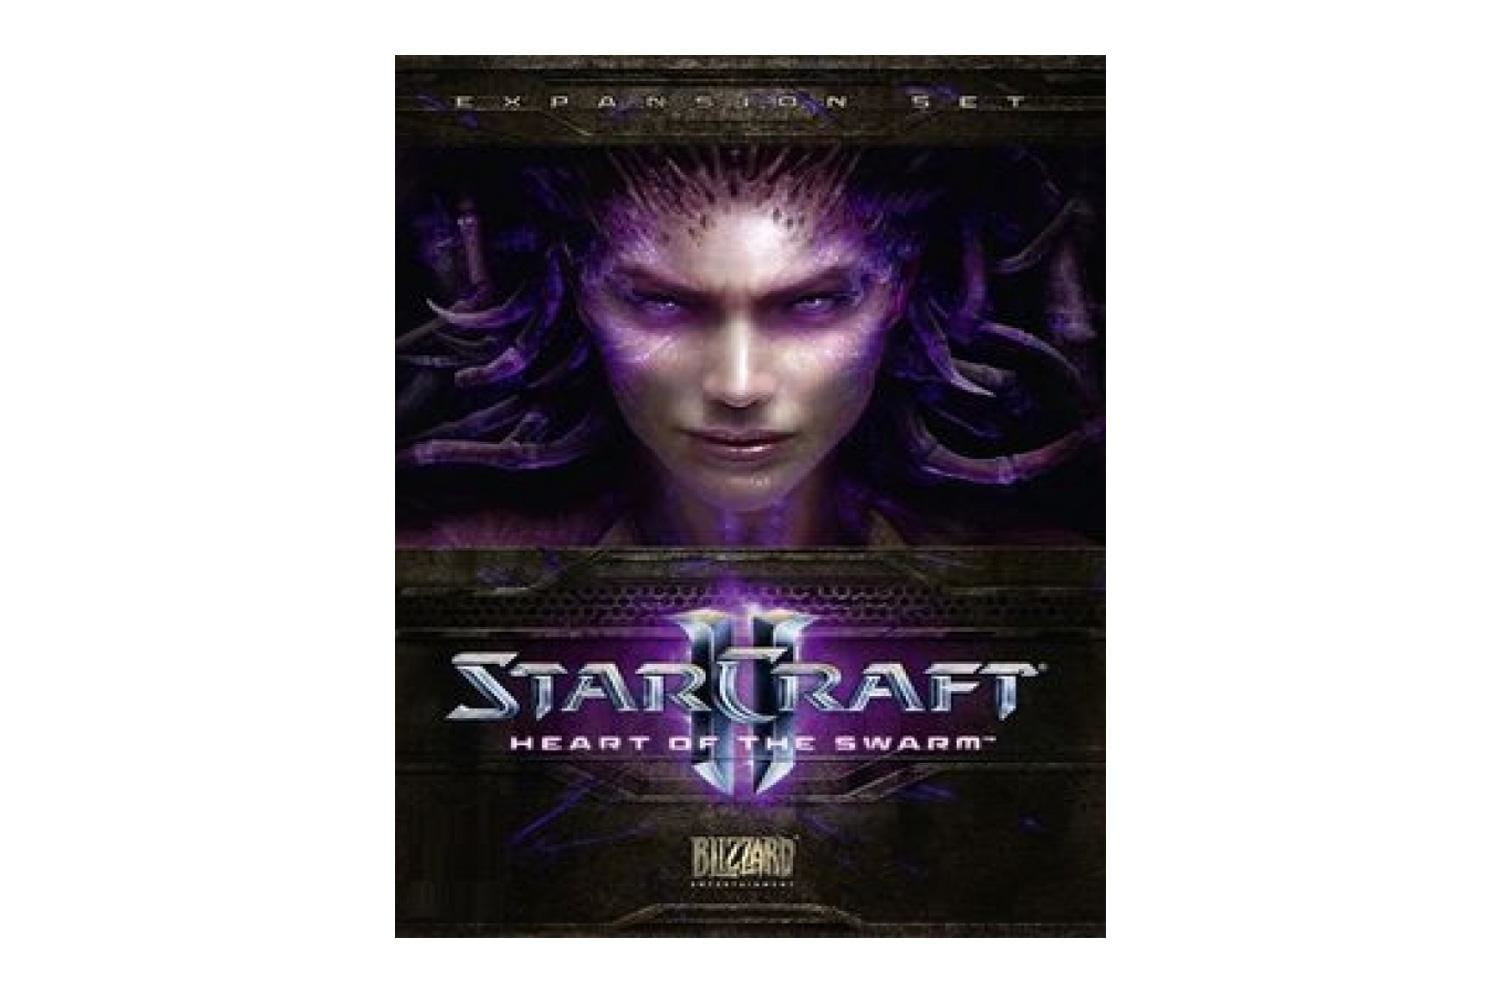 StarCraft-2-Heart-of-the-Swarm-cover-art